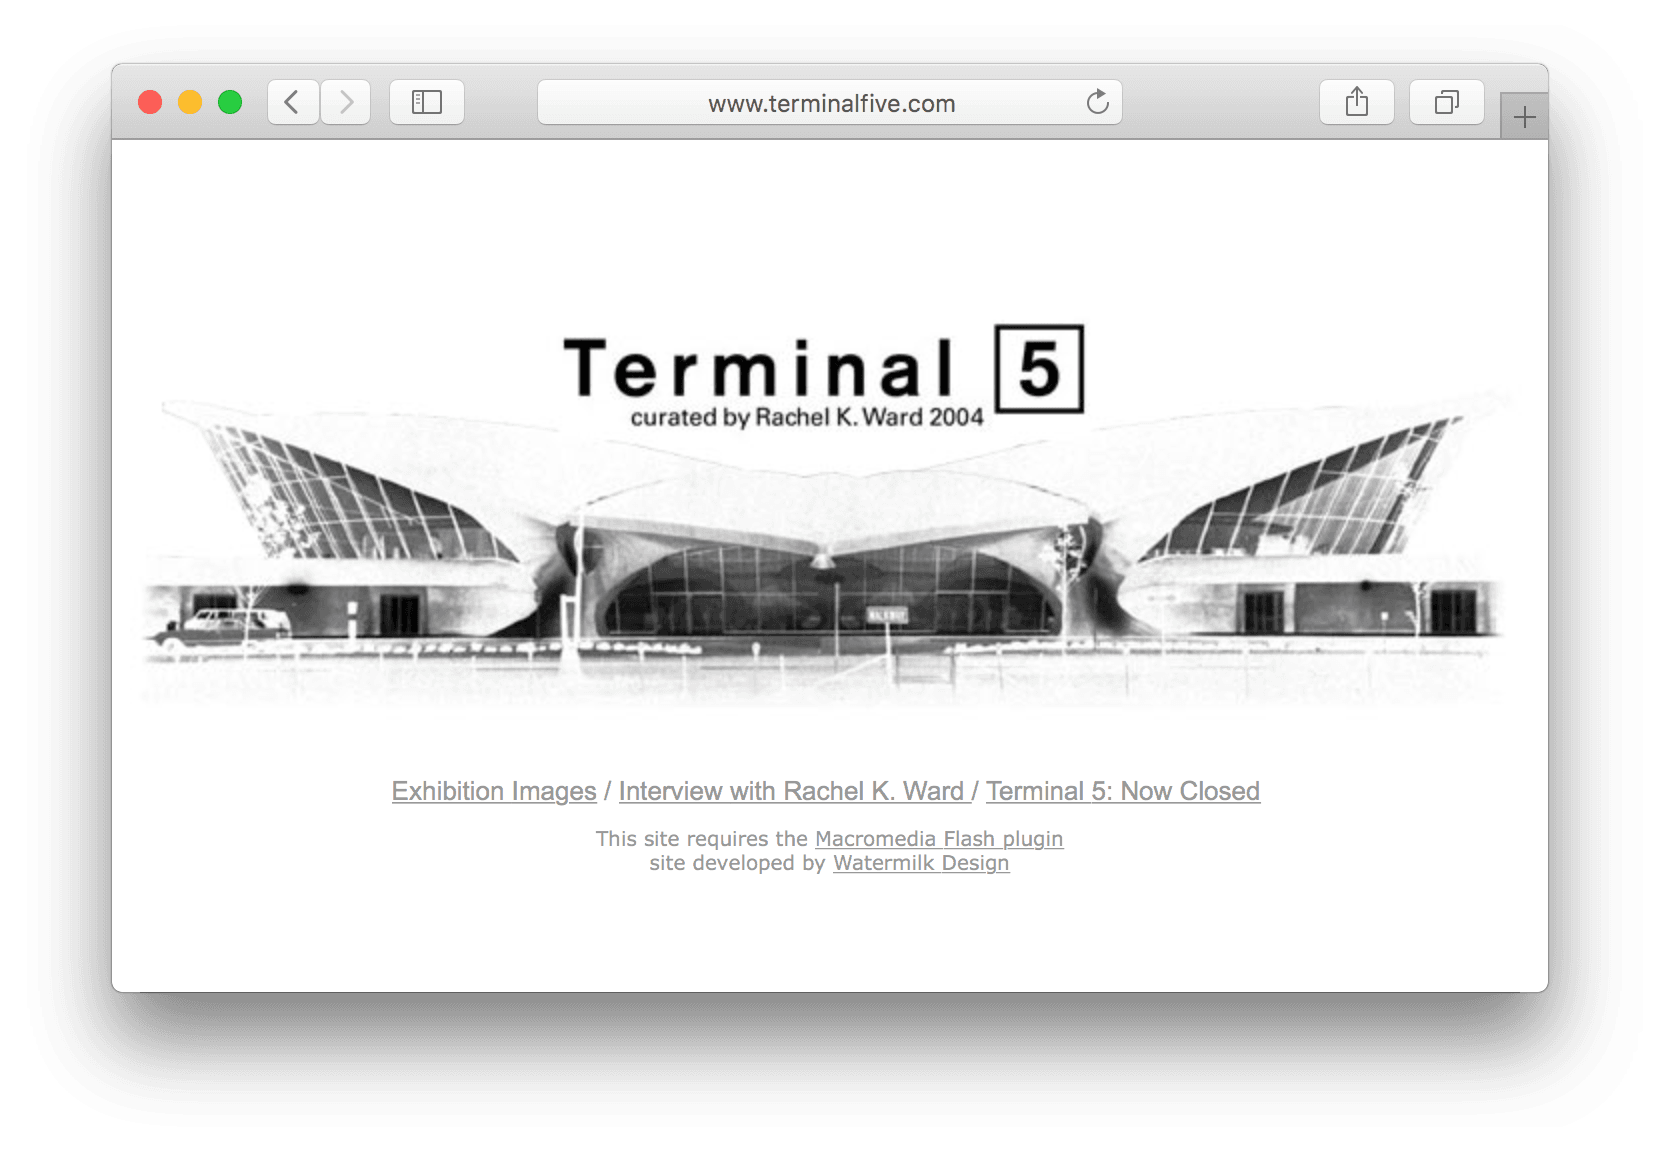 TerminalFive.com screenshot